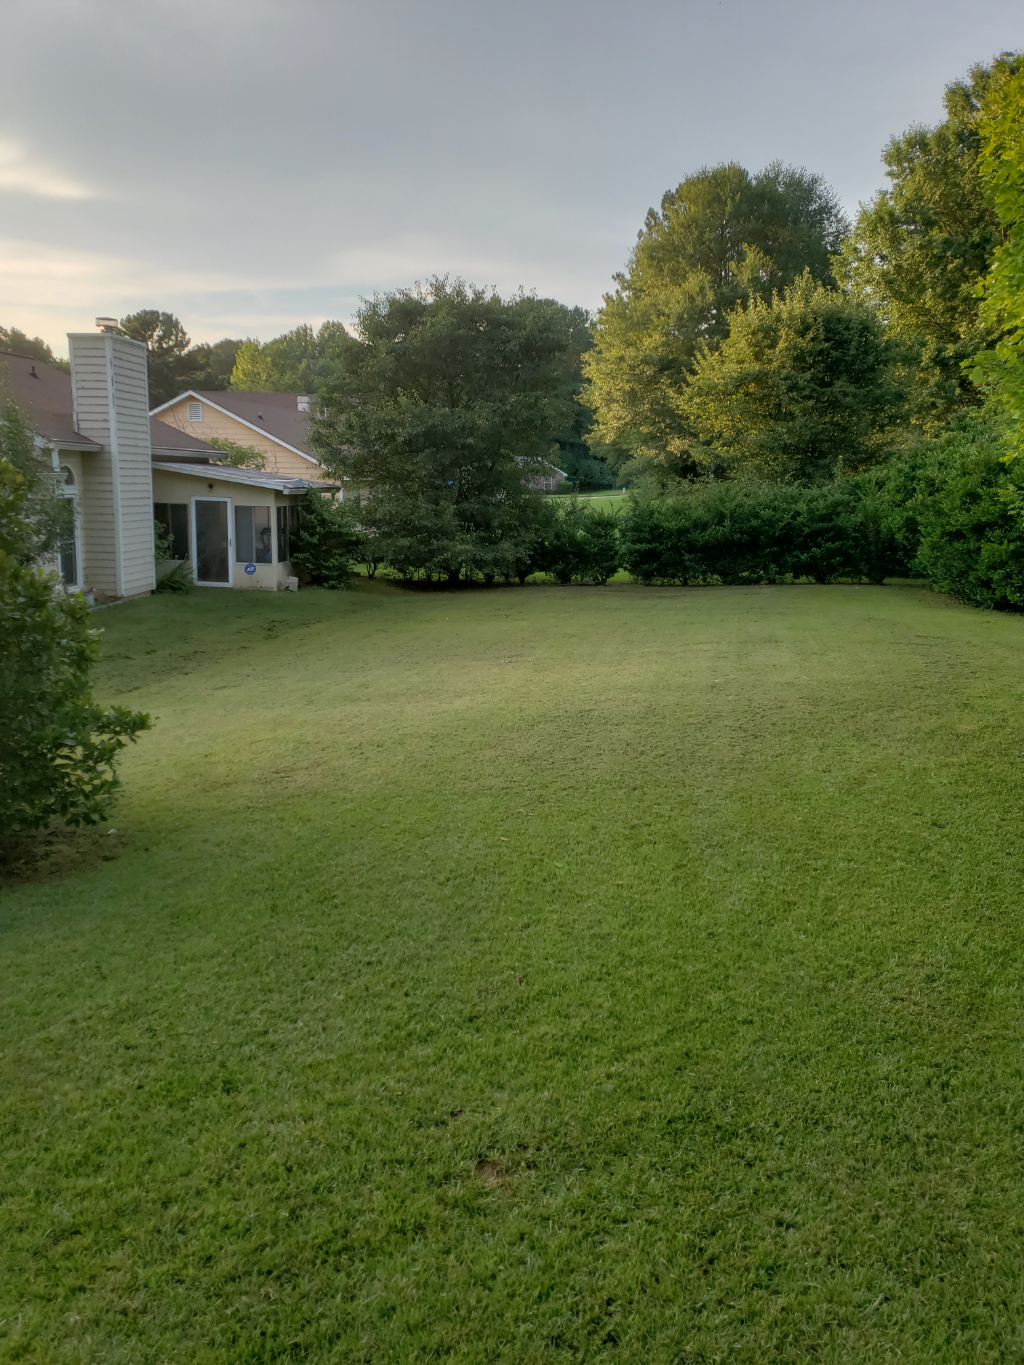 Yard mowing company in Stockbridge, GA, 30281